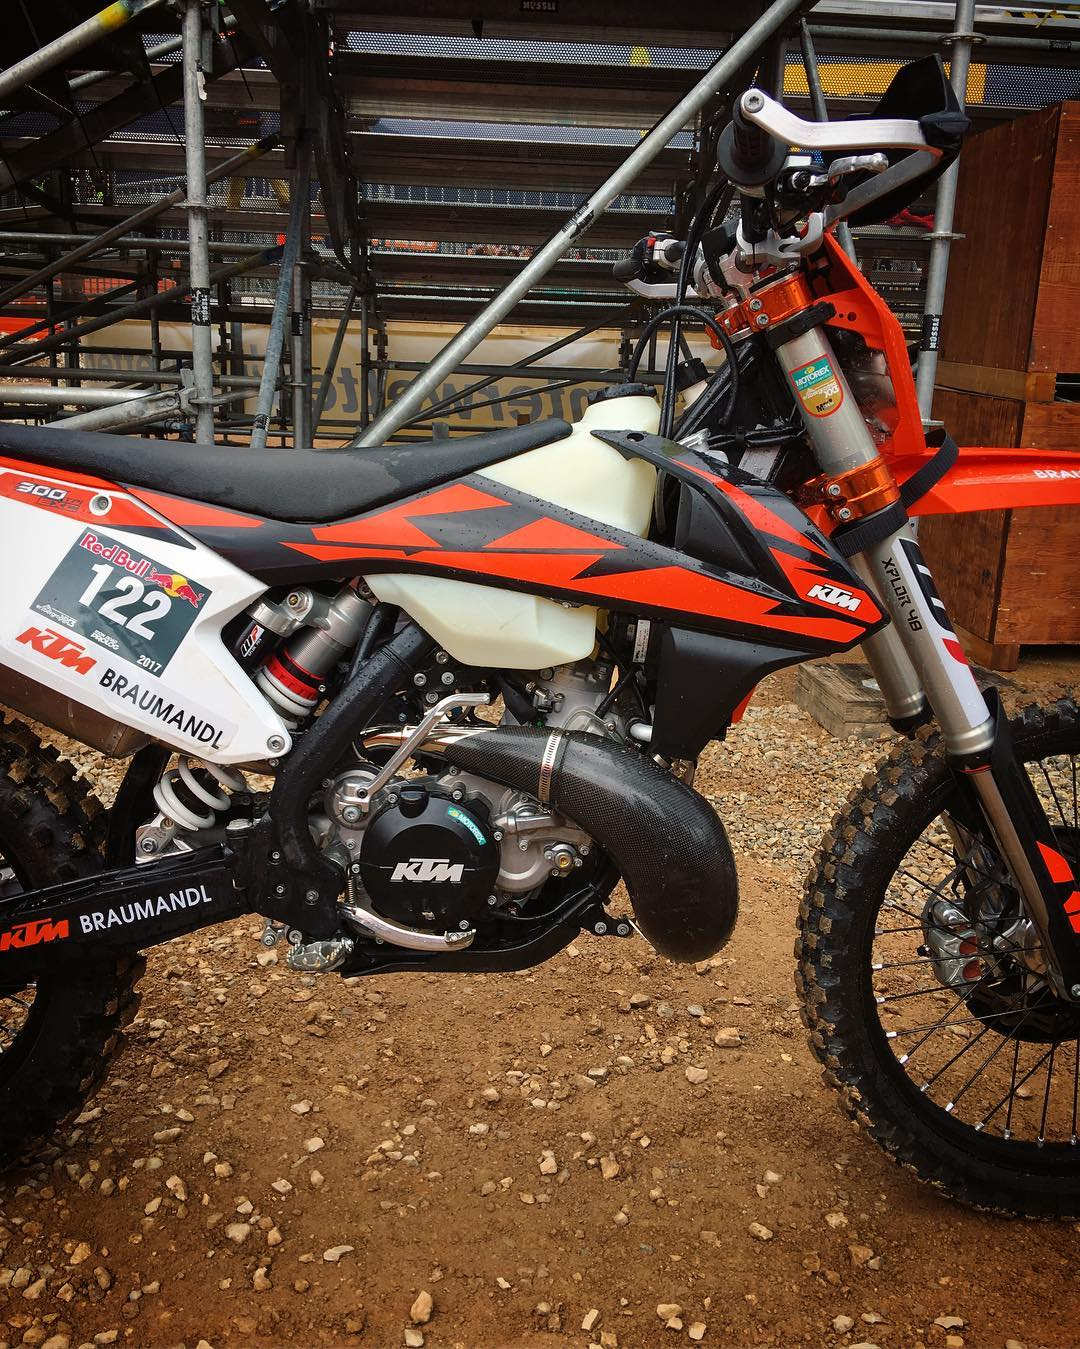 Not too many of the top guys have their #300exc Fuel injected bikes yet but there a few of the beauties floating around! #ktm #enduro